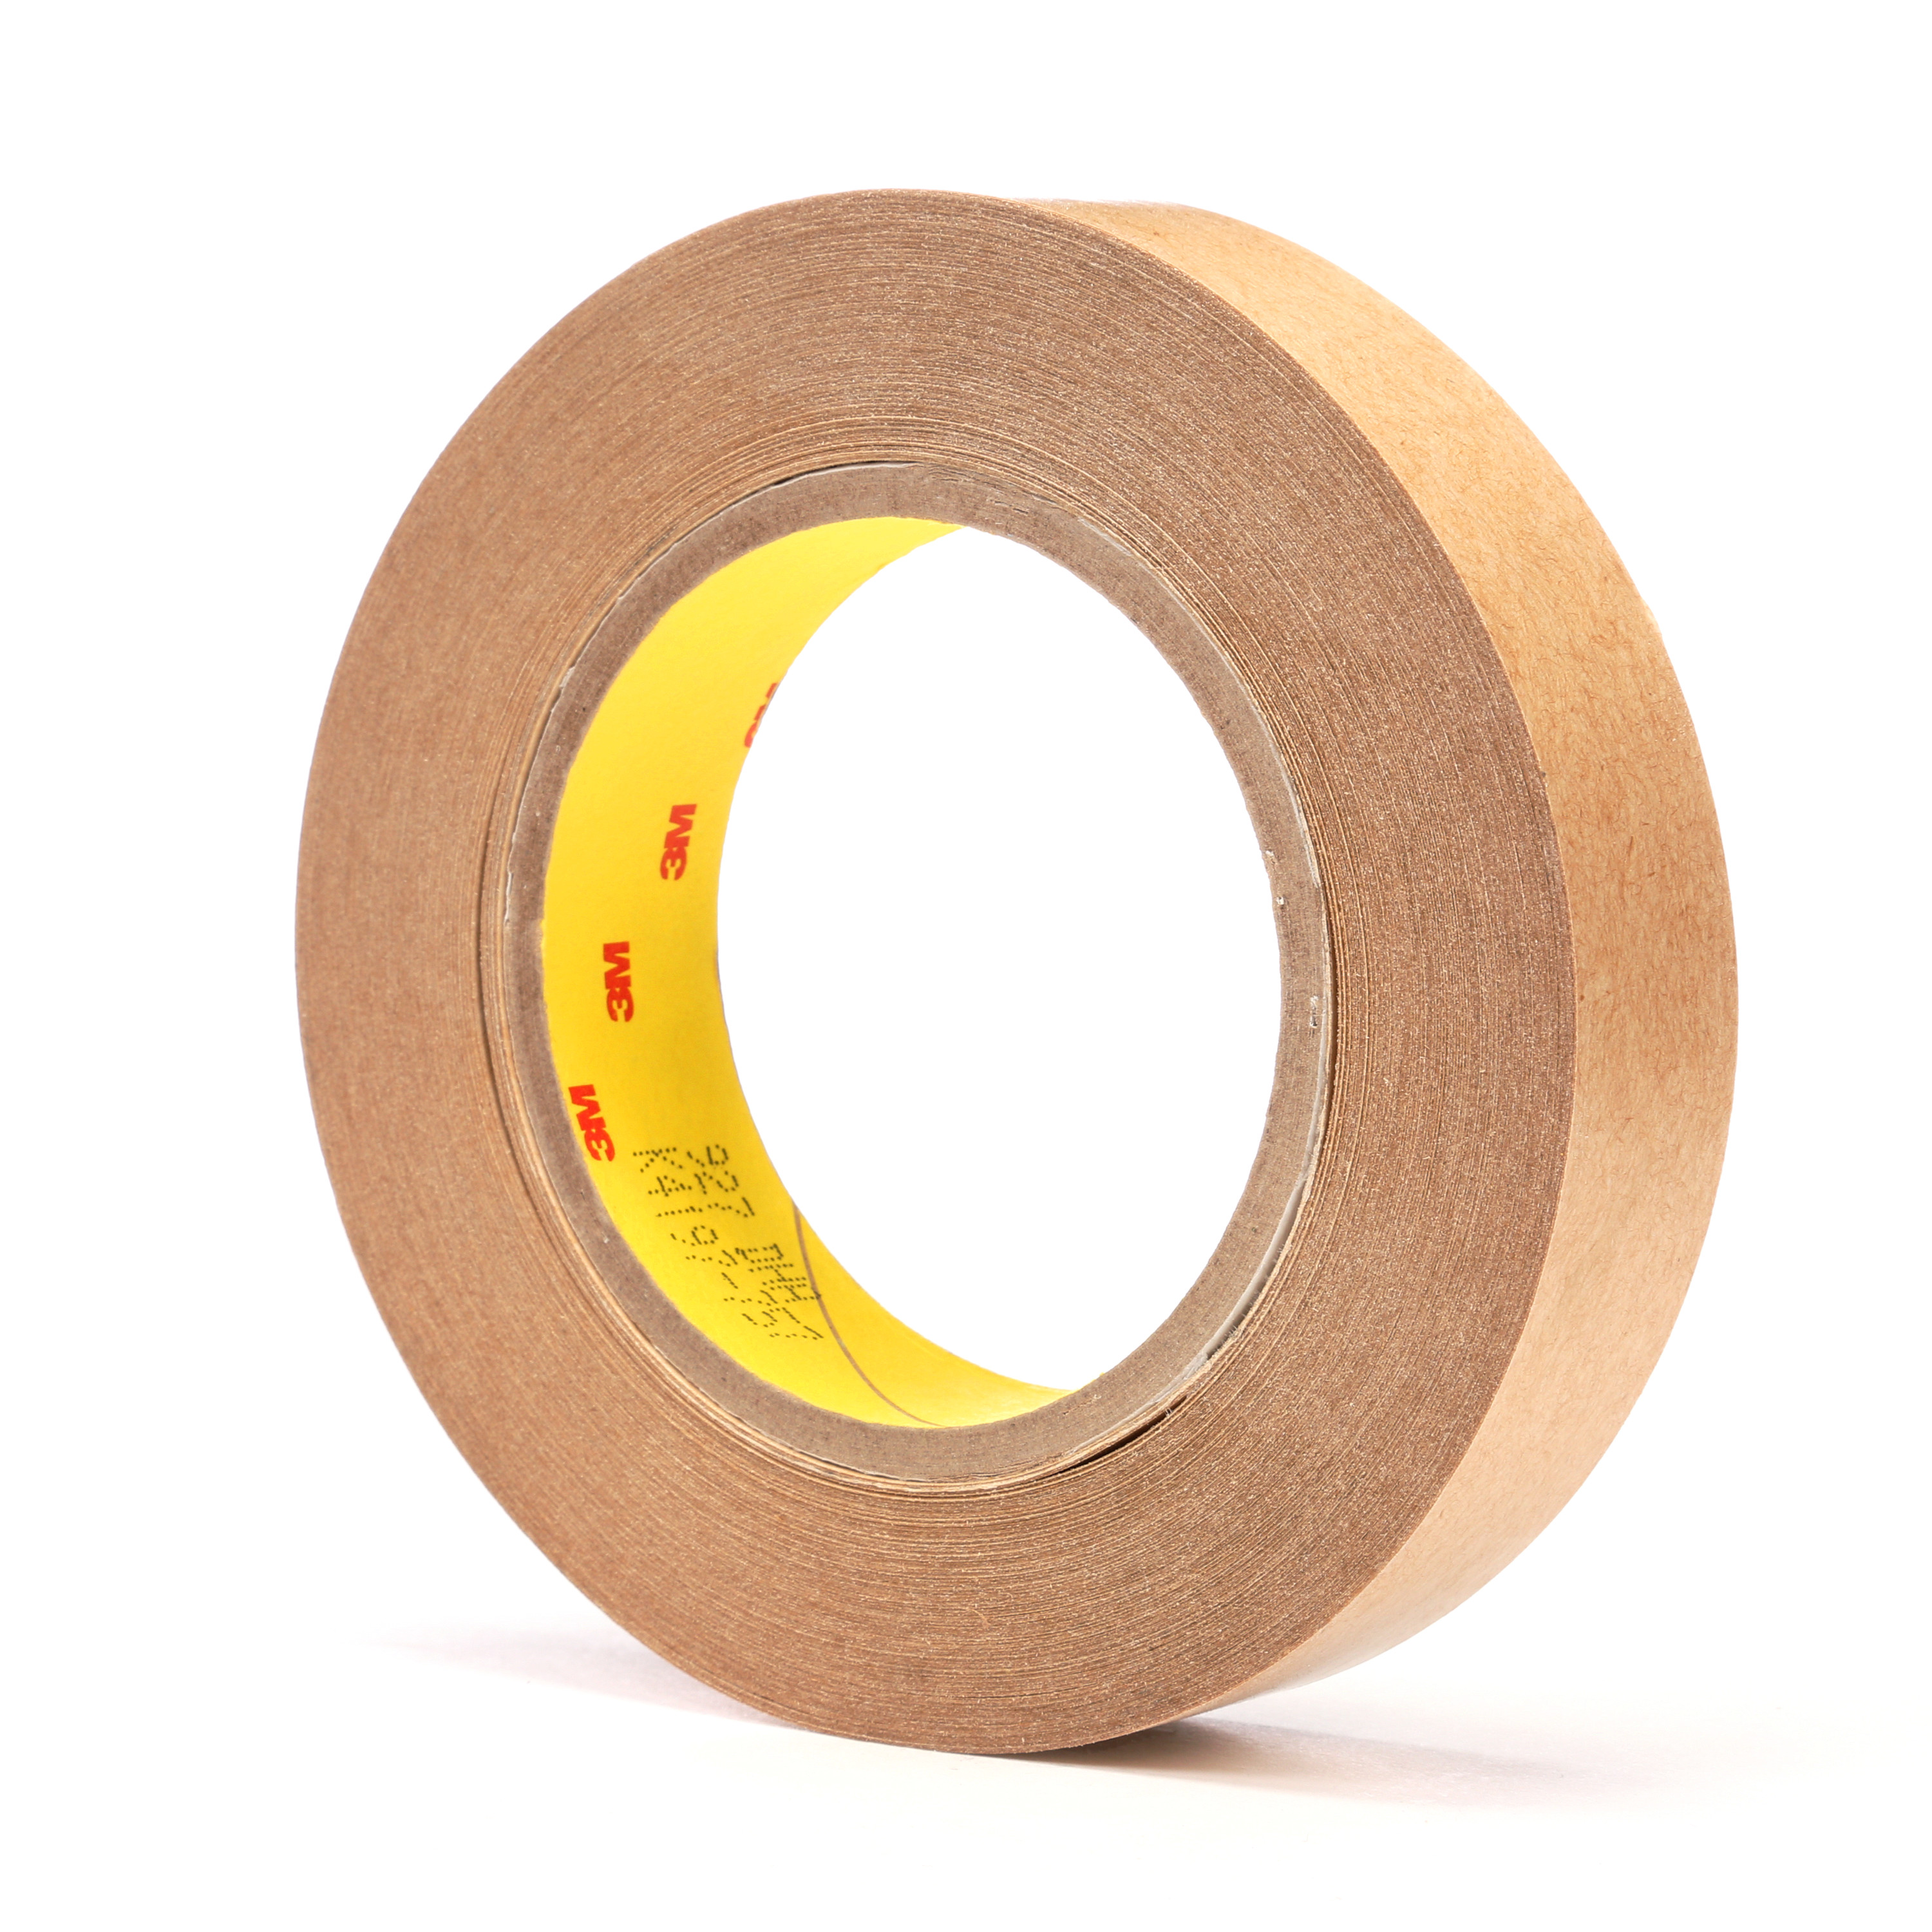 3M™ Adhesive Transfer Tape 927, Clear, 1 in x 60 yd, 2 mil, 36 rolls per case